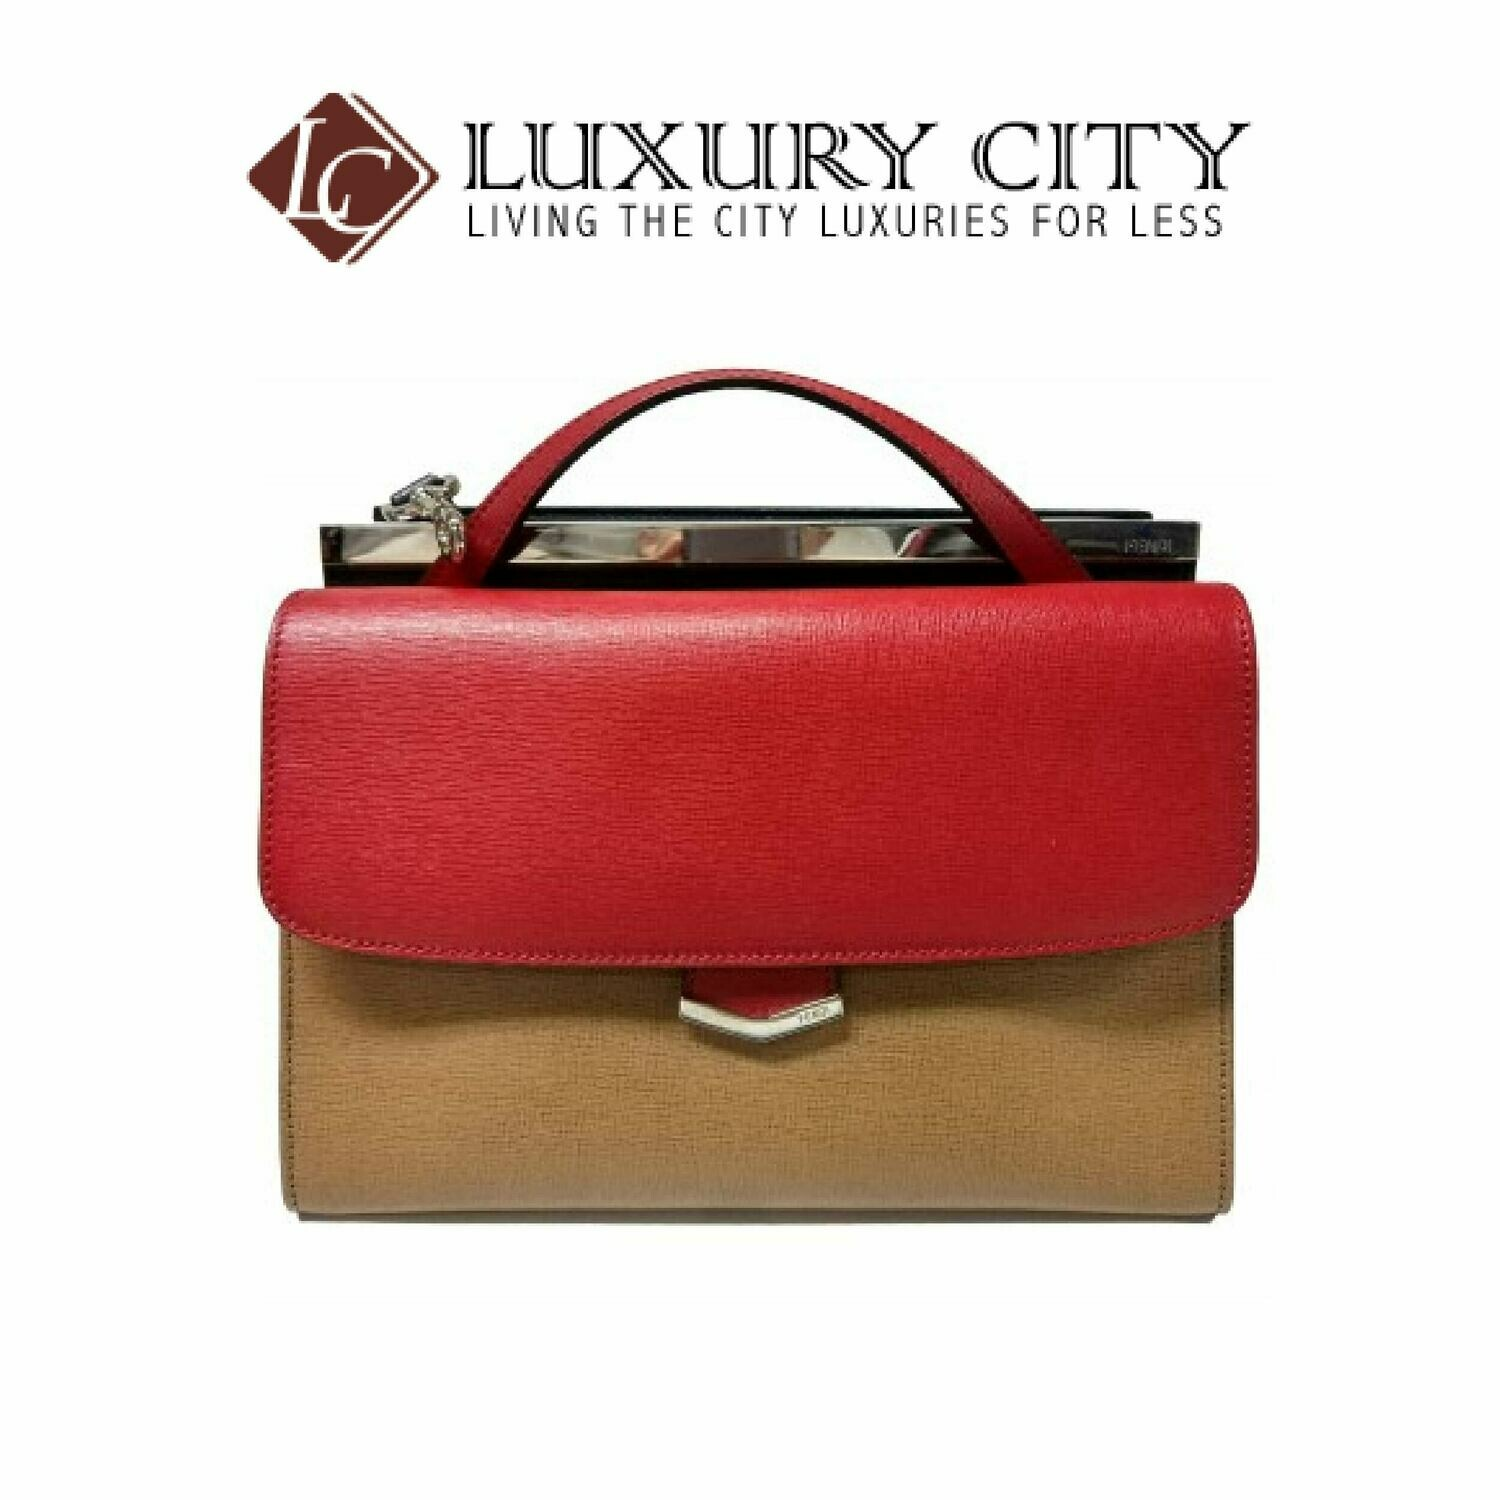 [Luxury City] Fendi 8BT222 Medium - Red/Brown/Blue